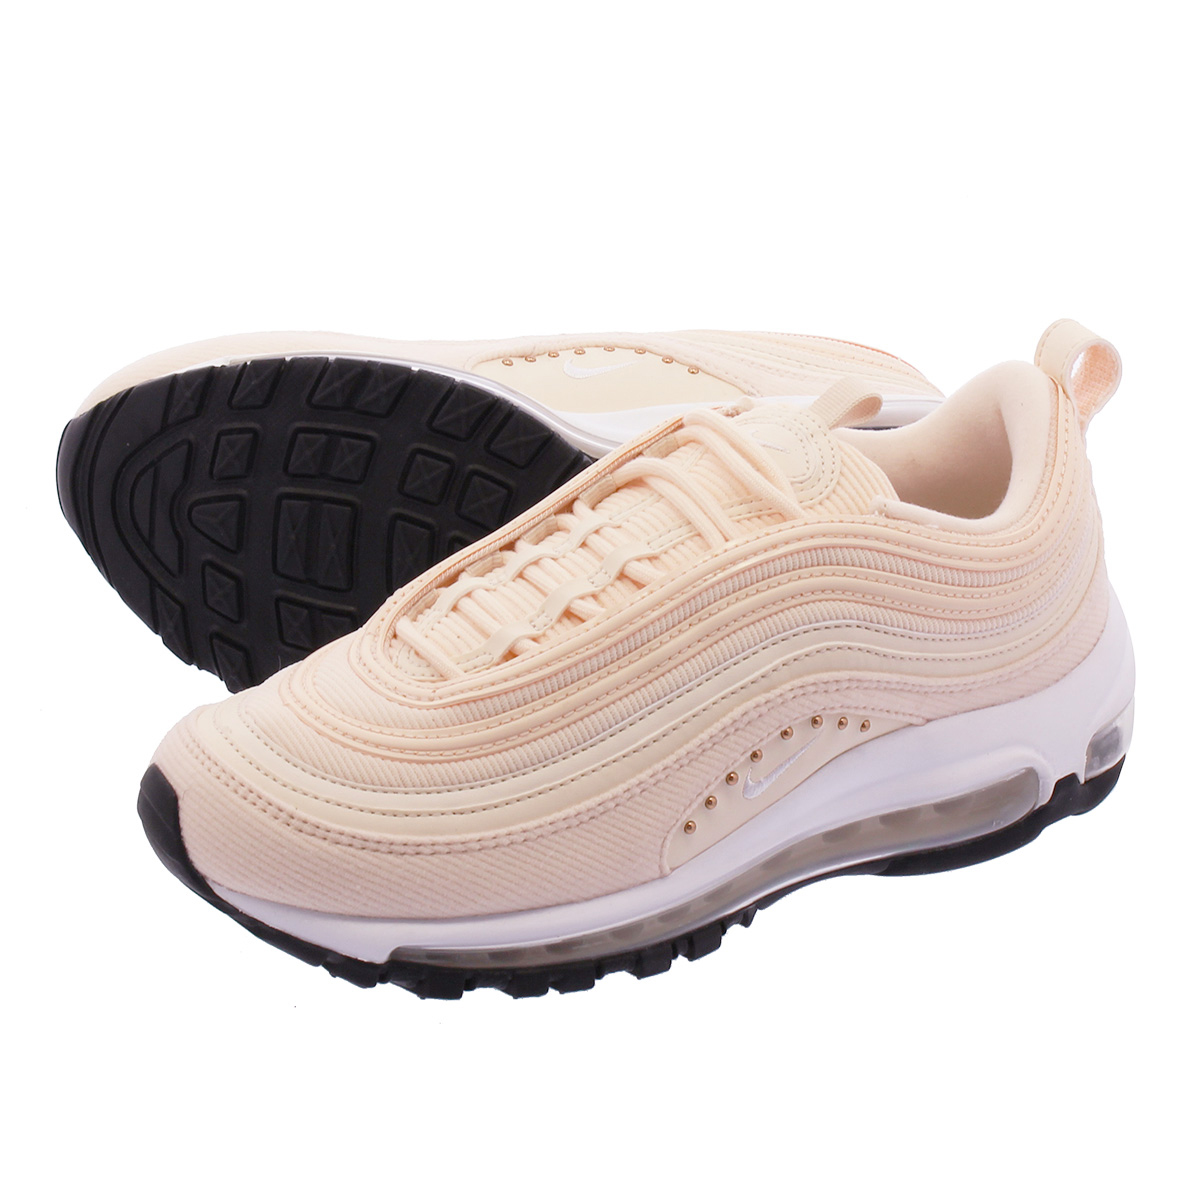 全品送料0円 NIKE WMNS AIR MAX ICE/BLACK/WHITE 97 MAX SE WMNS ナイキ ウィメンズ エア マックス 97 SE GUAVA ICE/BLACK/WHITE aq4137-800, 野迫川村:dd7c744d --- clftranspo.dominiotemporario.com